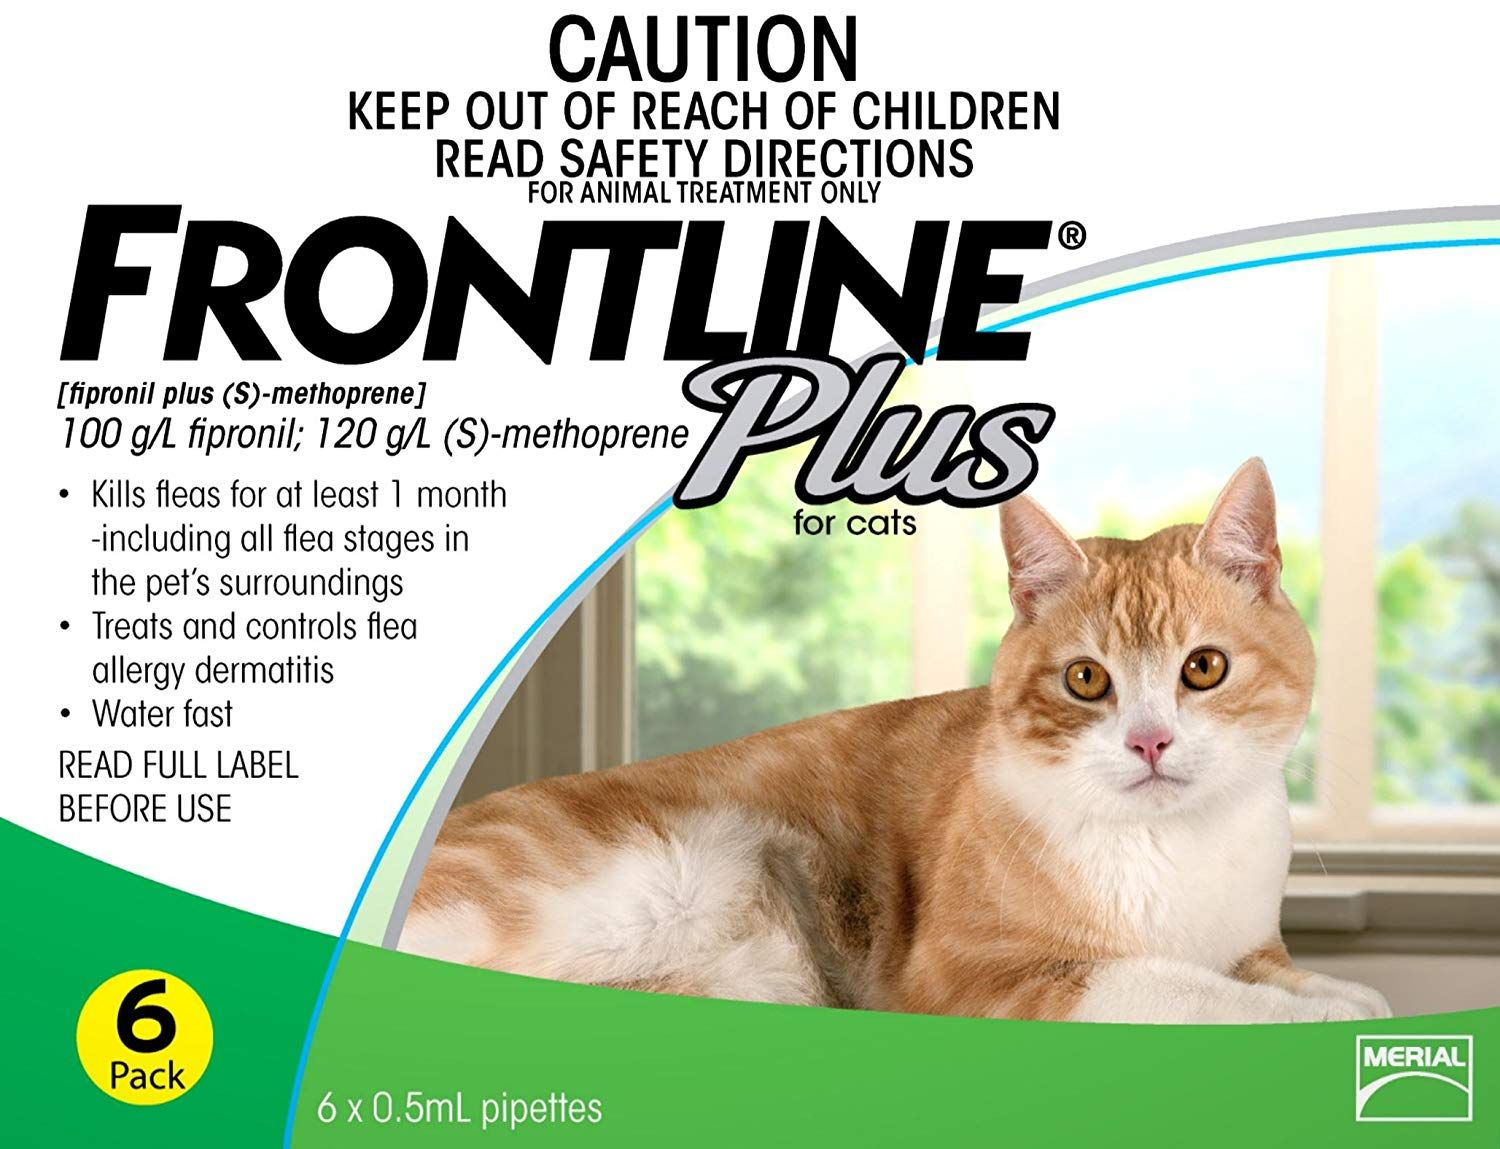 Merial Frontline Plus Flea And Tick Control For Cats And Kittens 6 Doses Prevents Control Kills R Cat Fleas Treatment Frontline Plus For Cats Cat Fleas